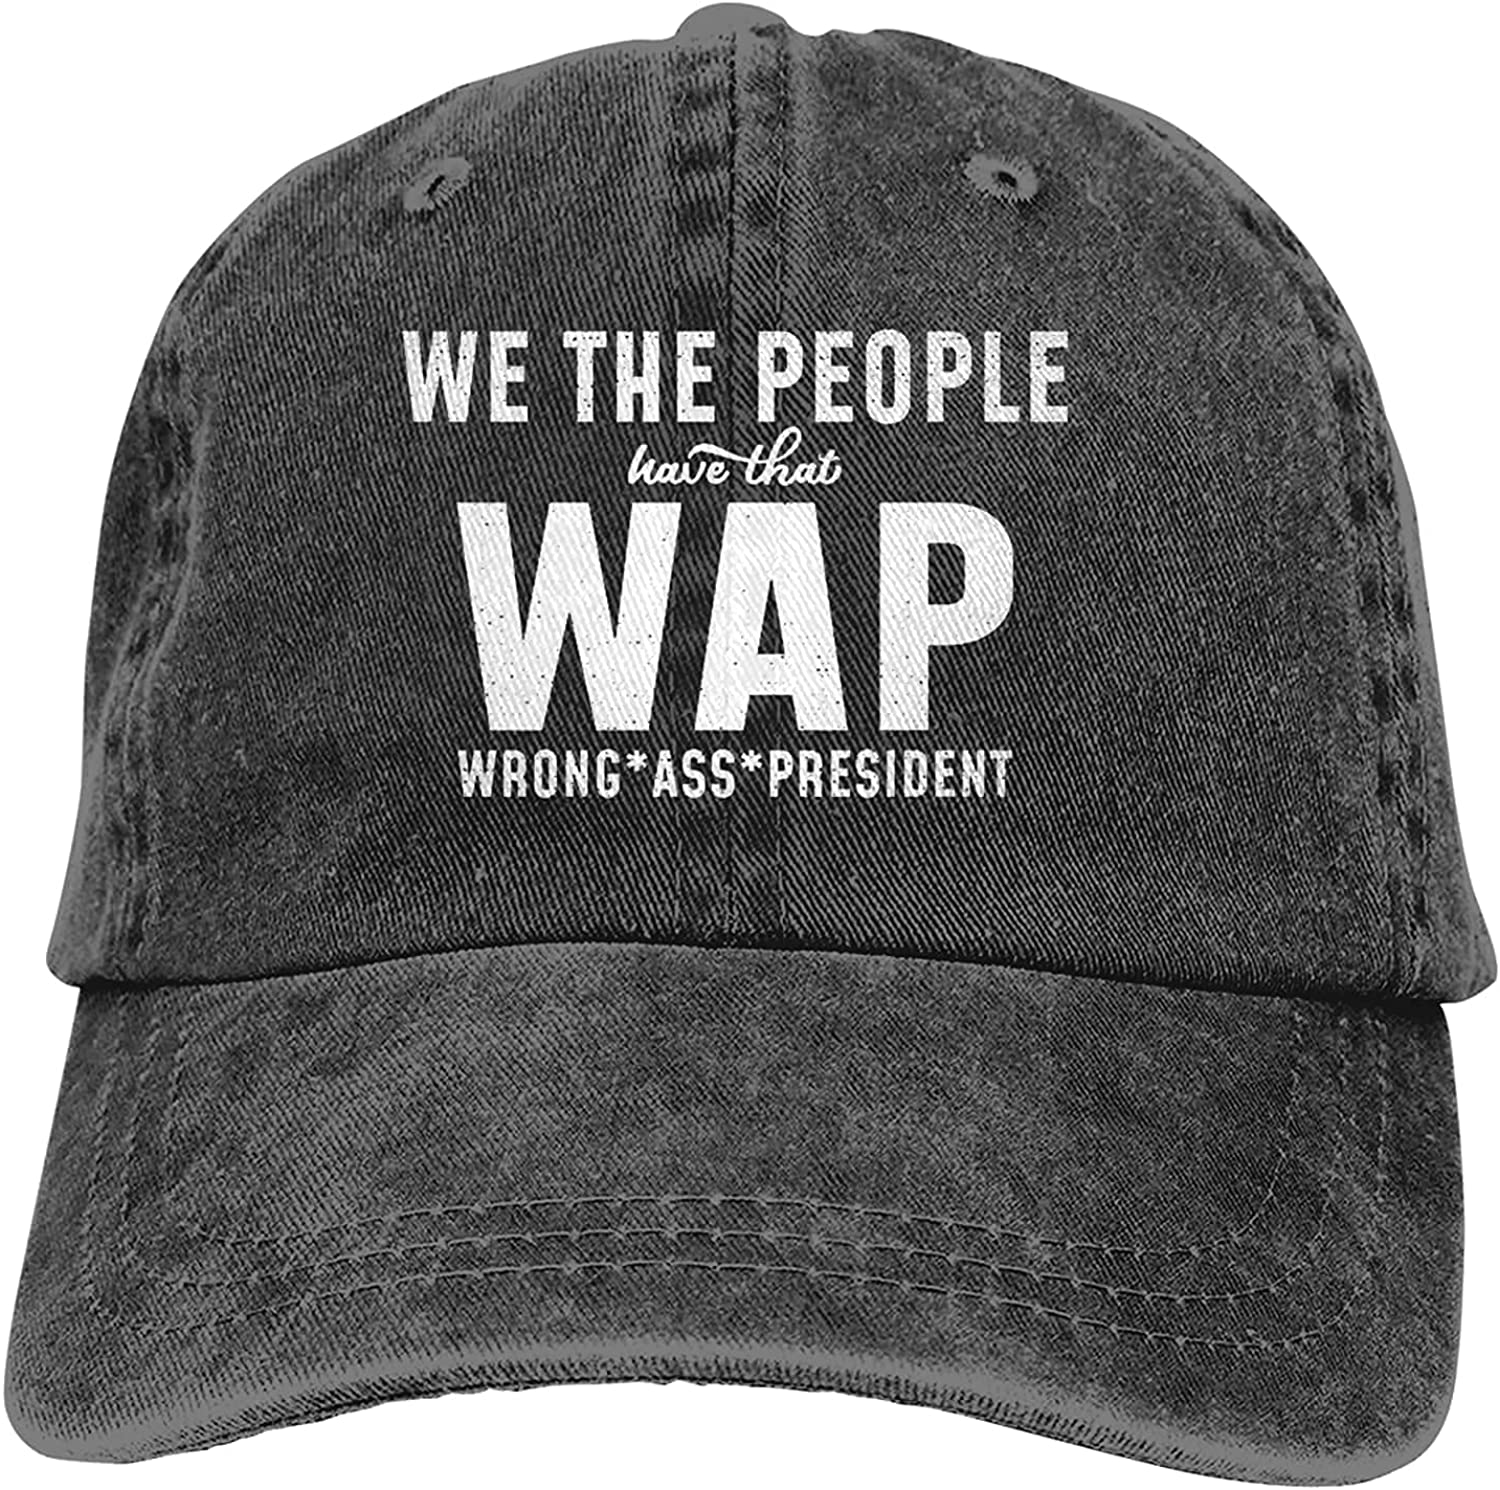 We The People Have That Wap Wrong Ass President Adjustable Washed Dad Hat Cowboy Cap Denim Cap Baseball Cap